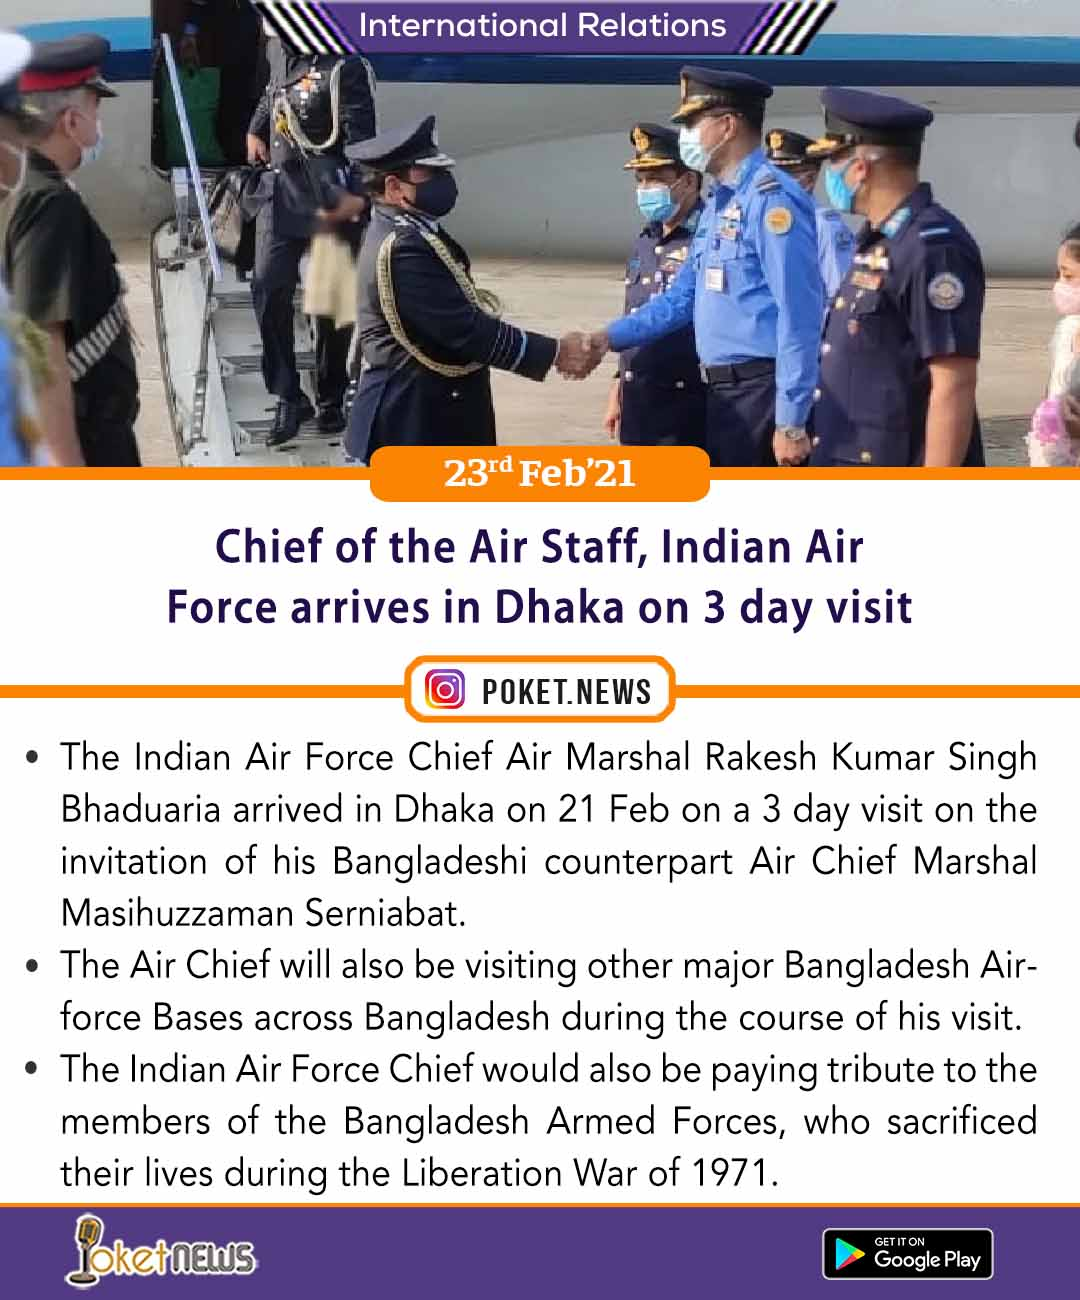 Chief of the Air Staff, Indian Air Force arrives in Dhaka on 3 day visit